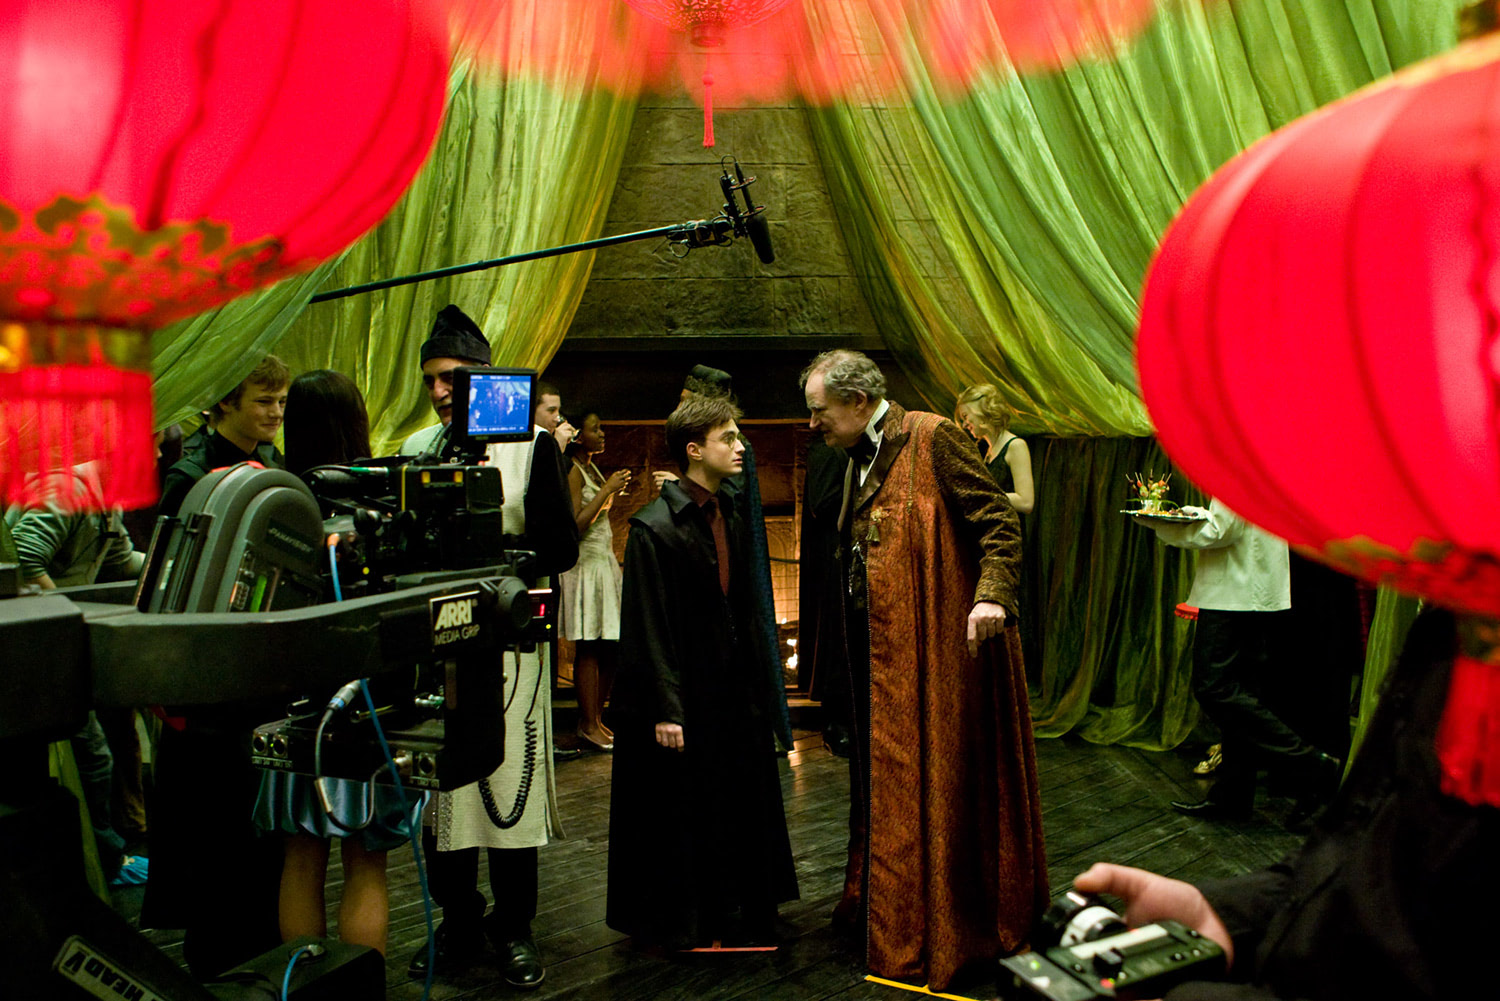 Shooting Slughorn's party